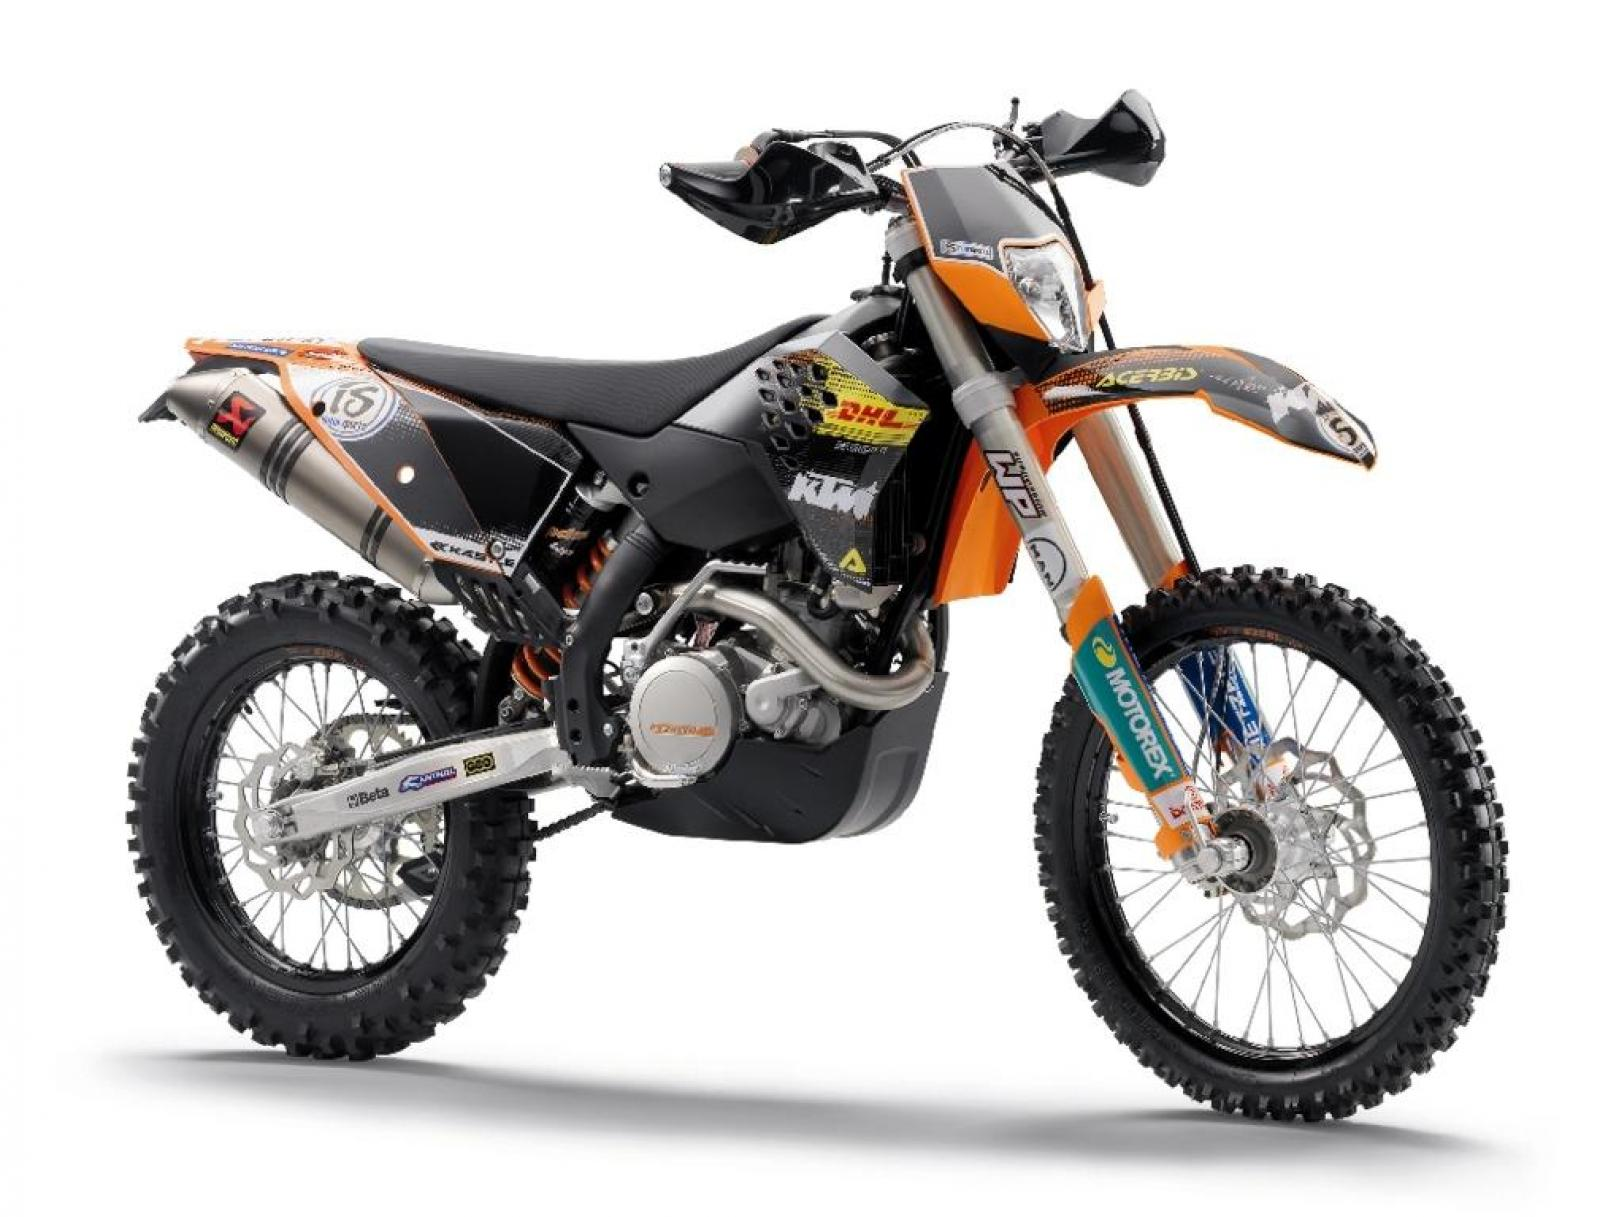 2009 ktm 400 exc pics specs and information. Black Bedroom Furniture Sets. Home Design Ideas